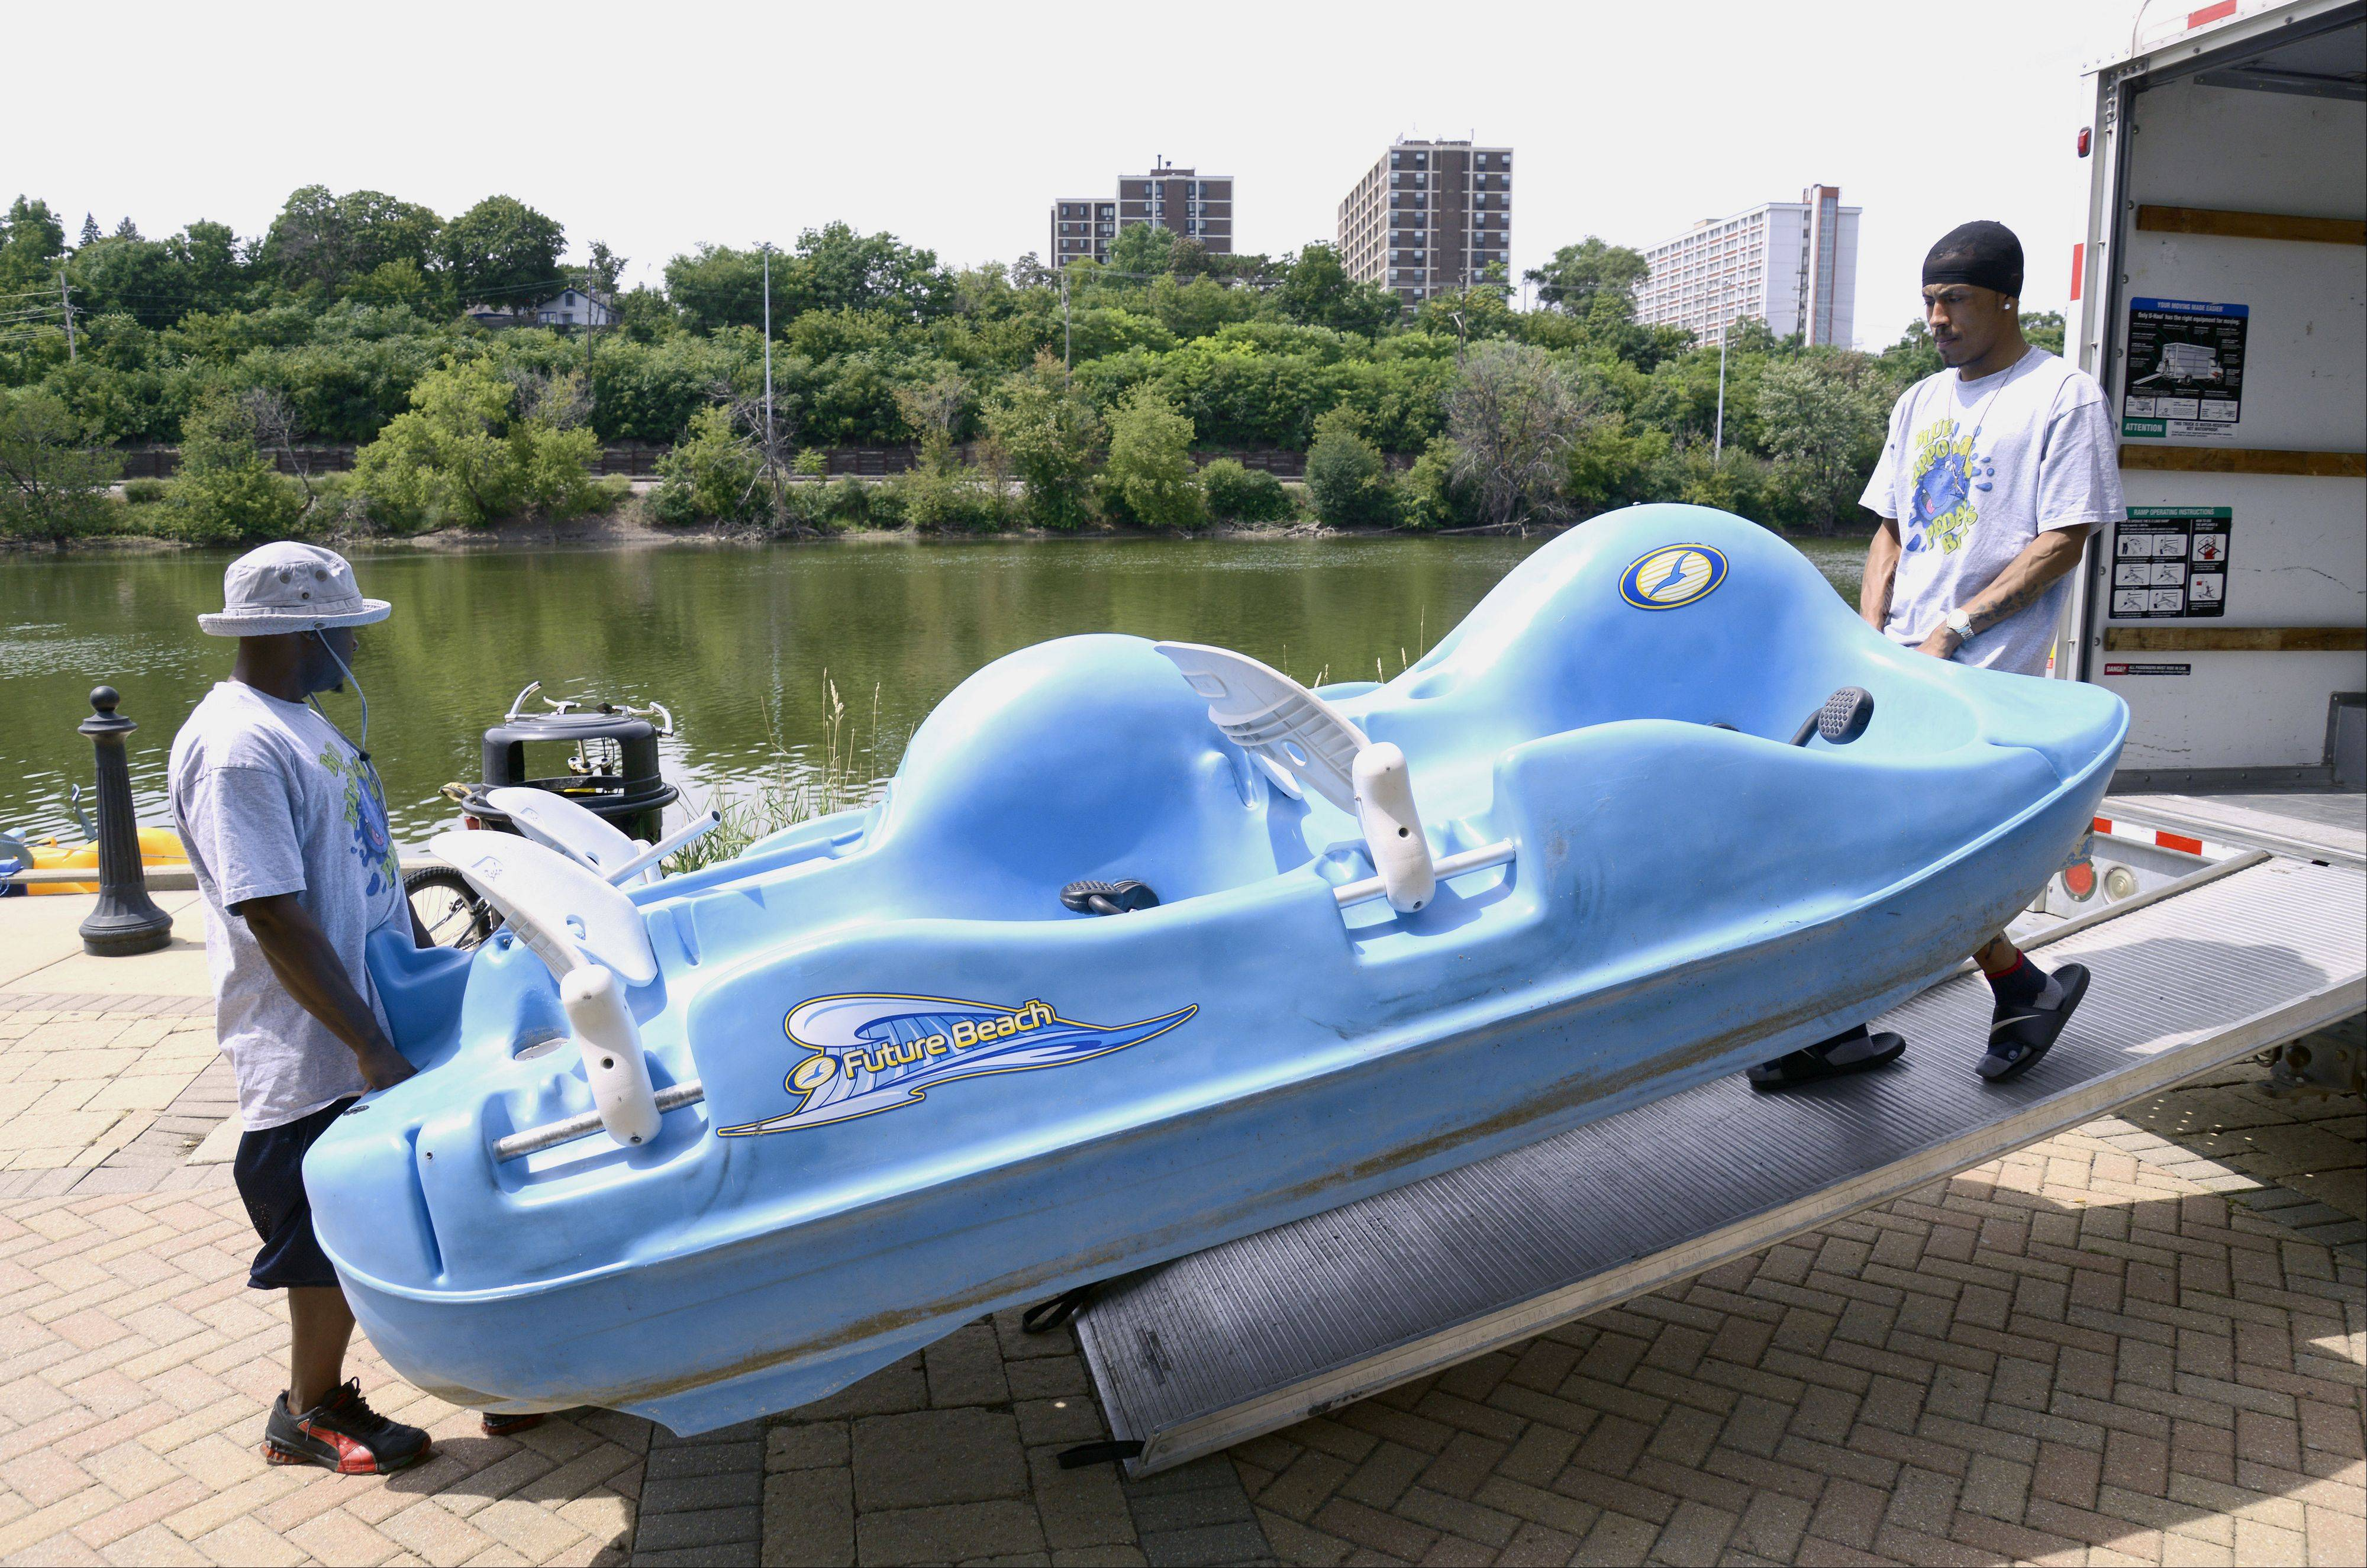 Justin Hodge, owner of Blue Hippo Pedal Boats, left, and employee Daniel Garcia, unload a four-seater as they set up for business Thursday at Festival Park in Elgin. Riders have a choice of a two-seater or a four-seater boat.